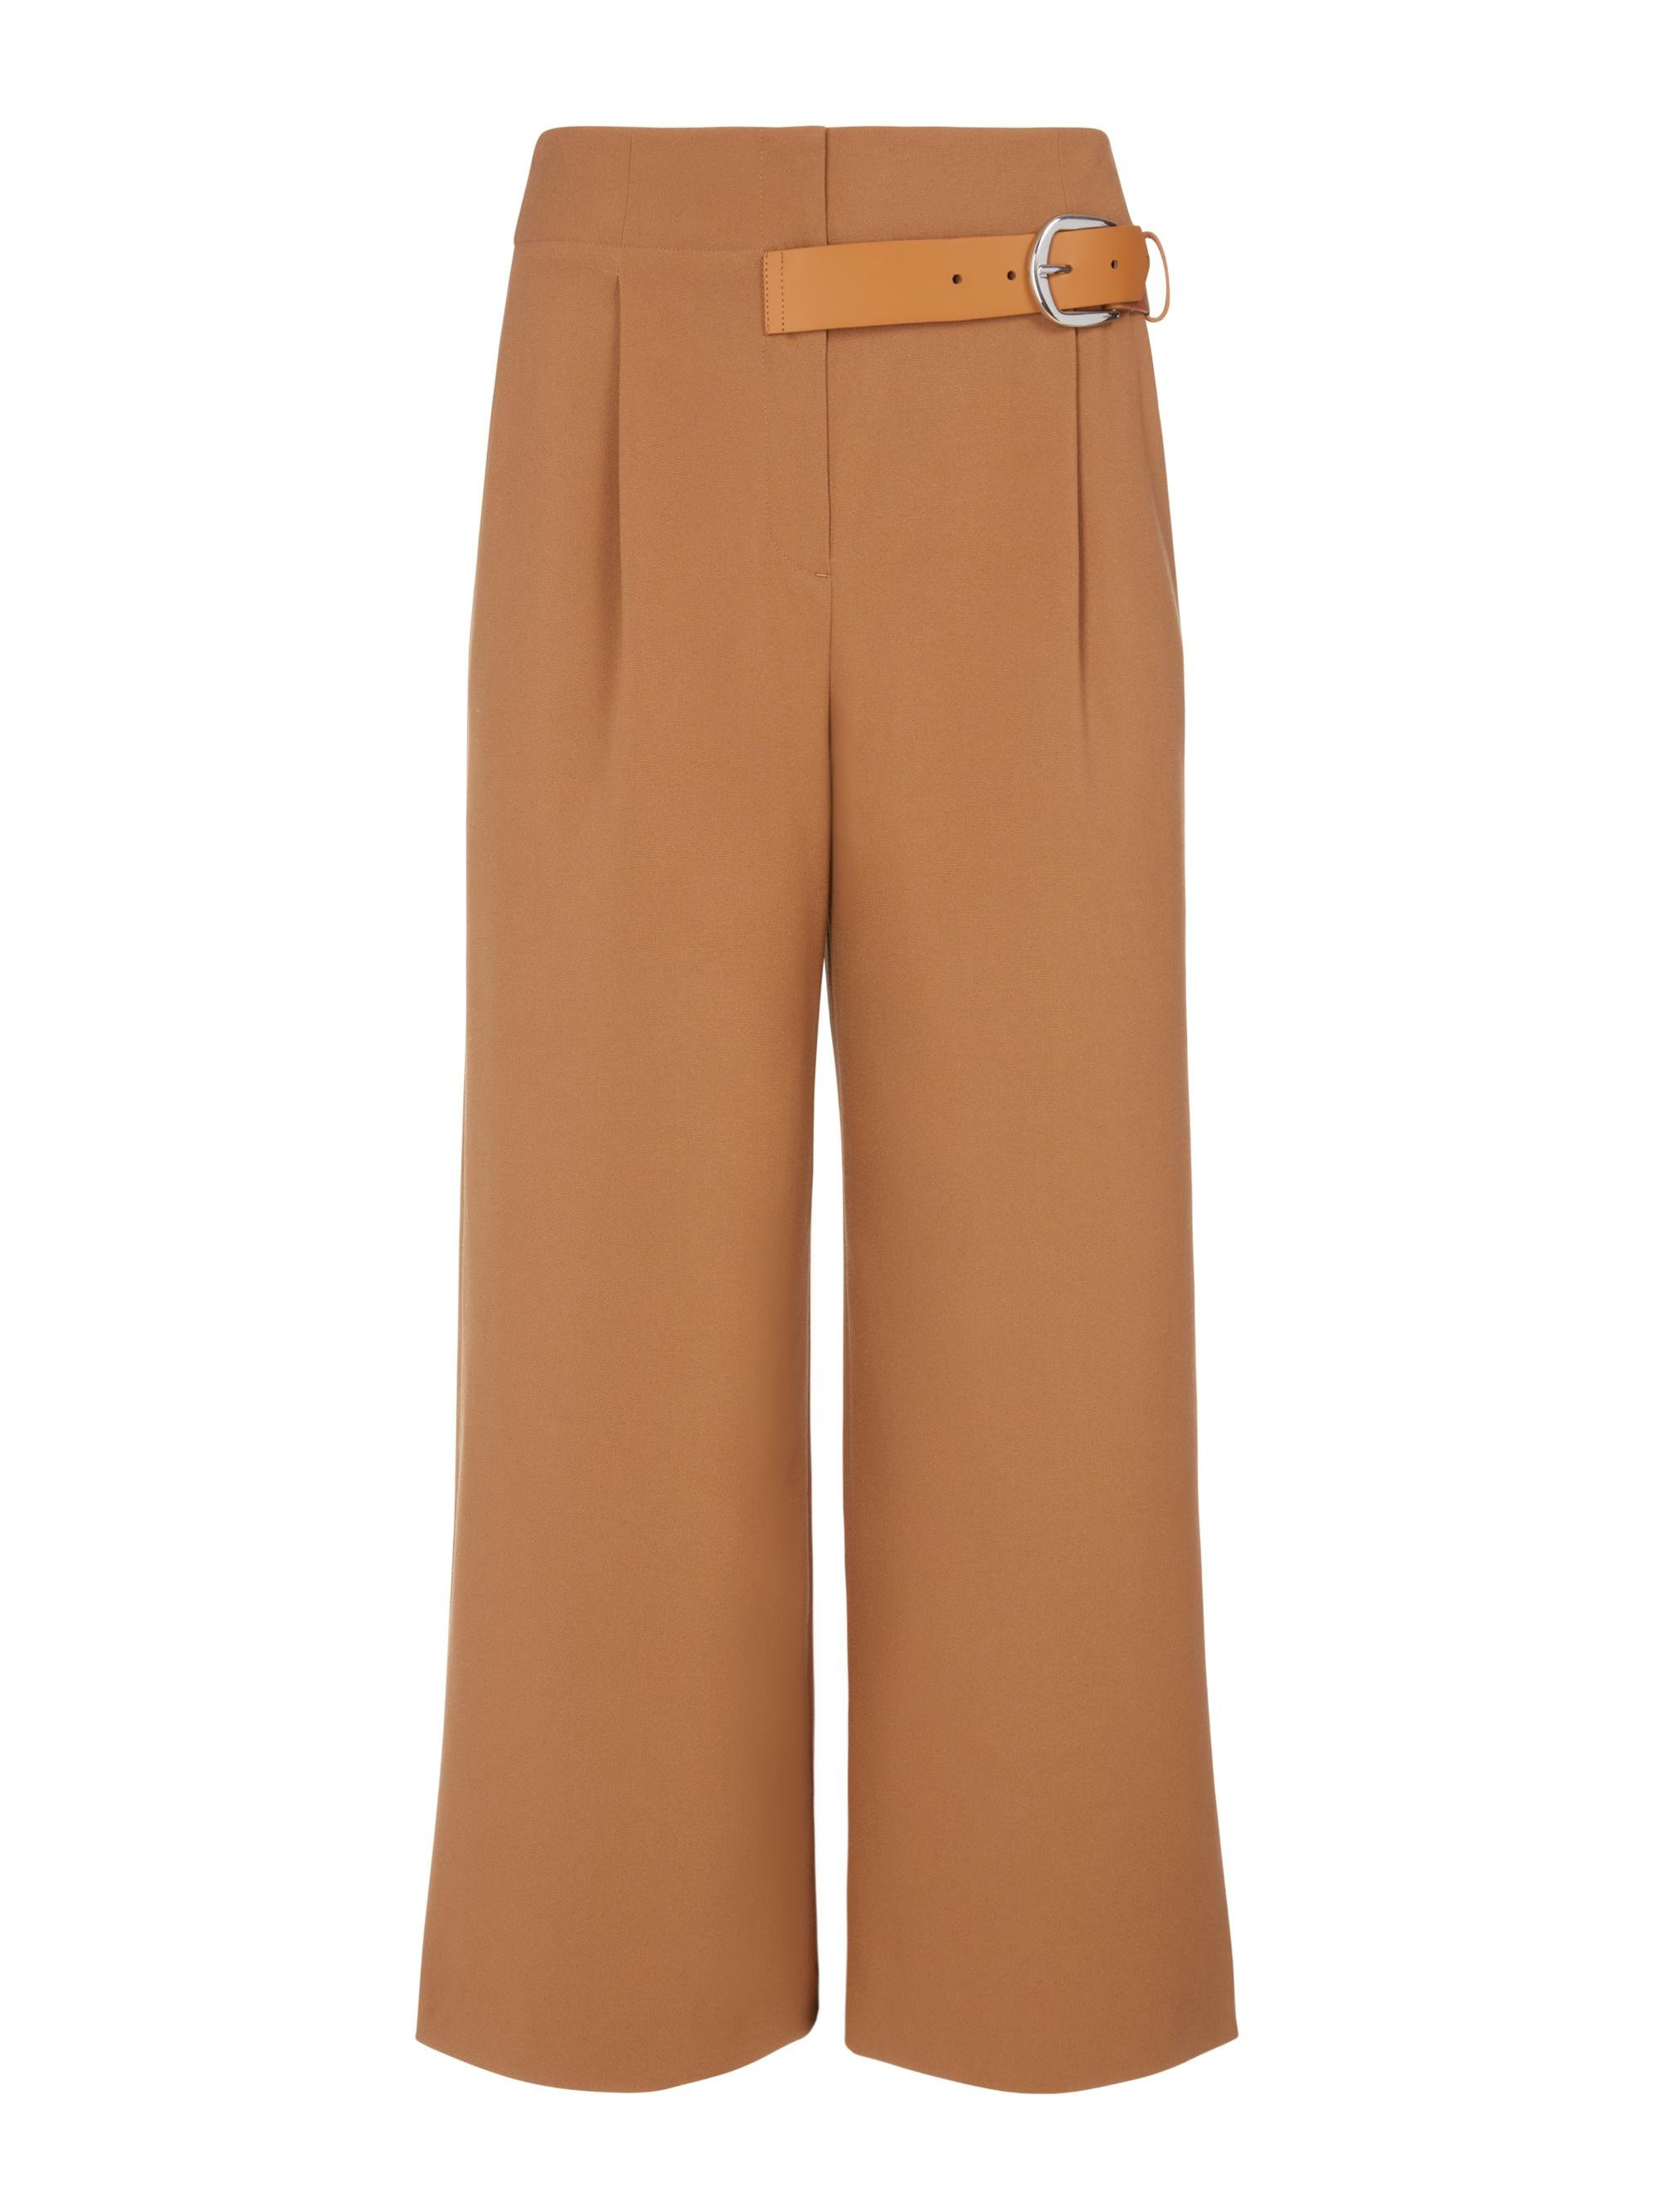 ADELINA BELTED PANT 5